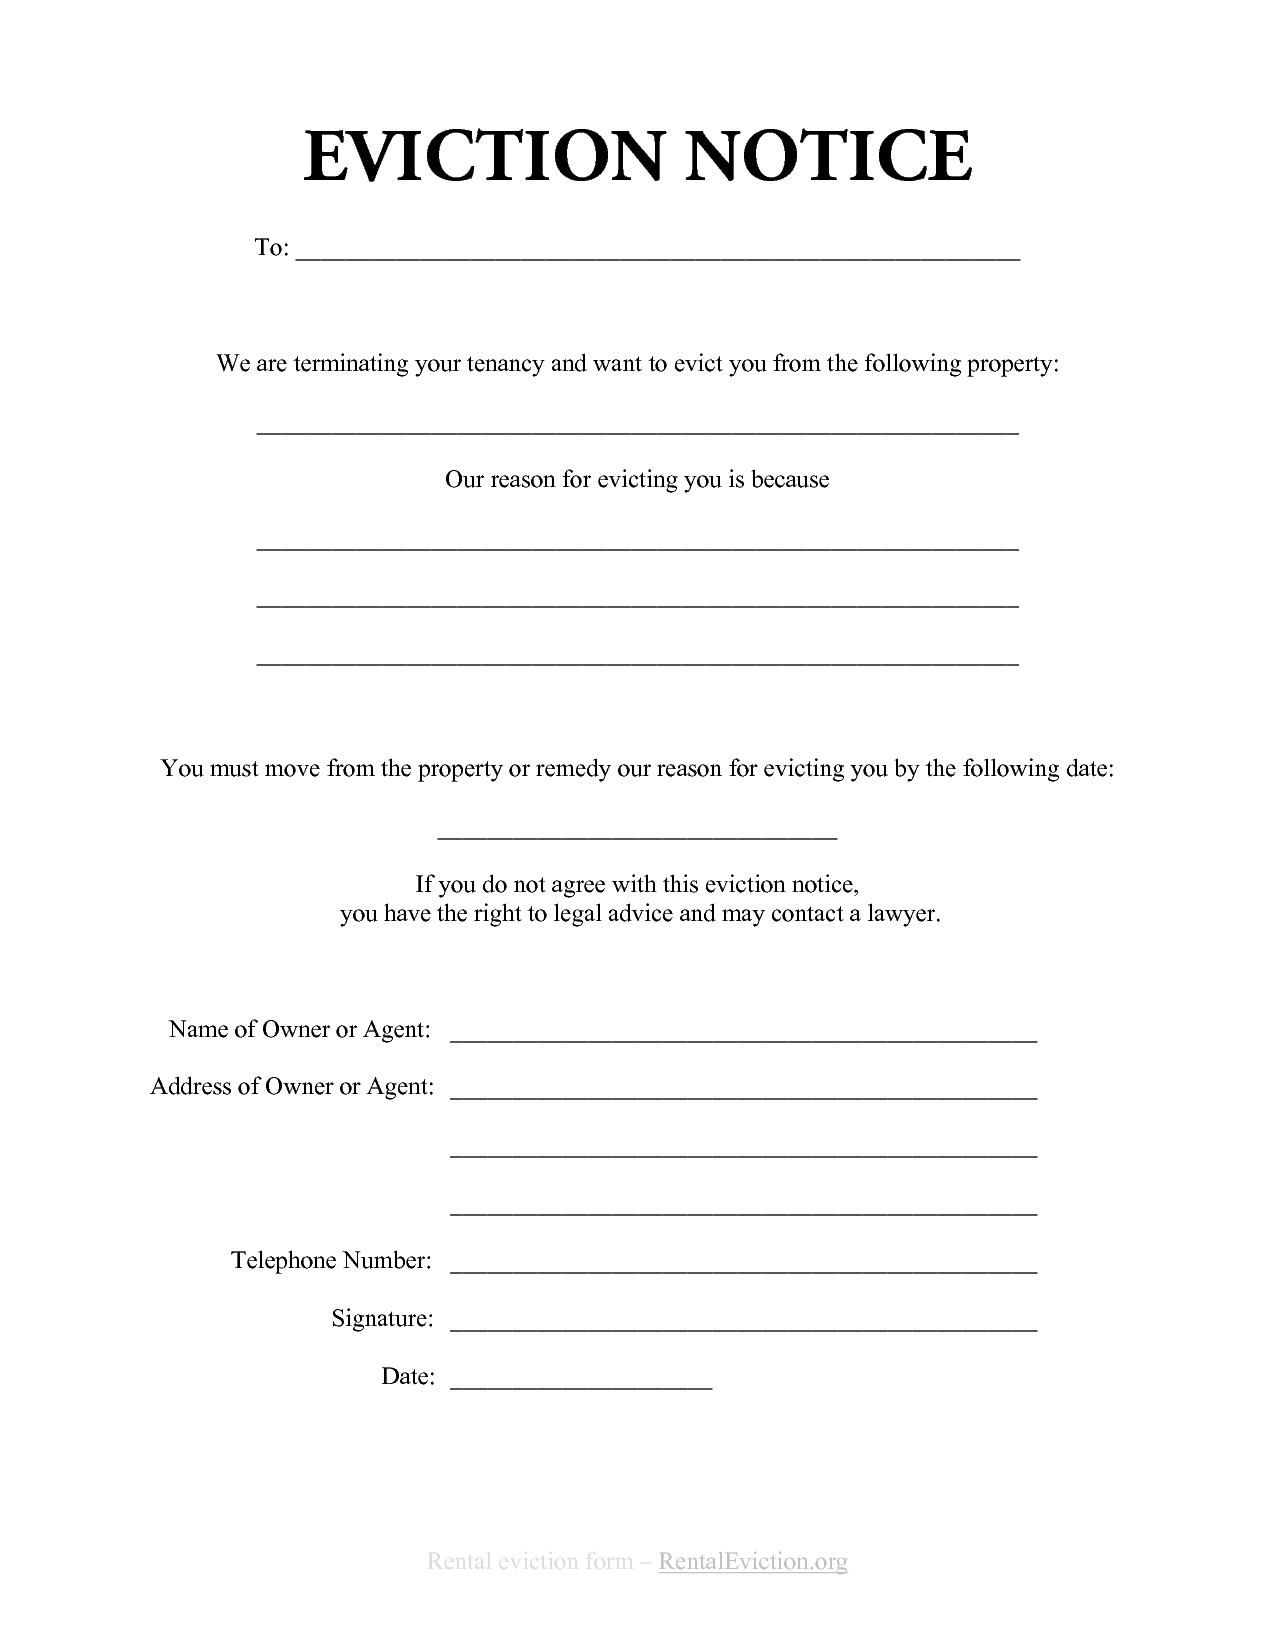 Eviction Notice Letter Template - Free Print Out Eviction Notices Free Rental Eviction Notice